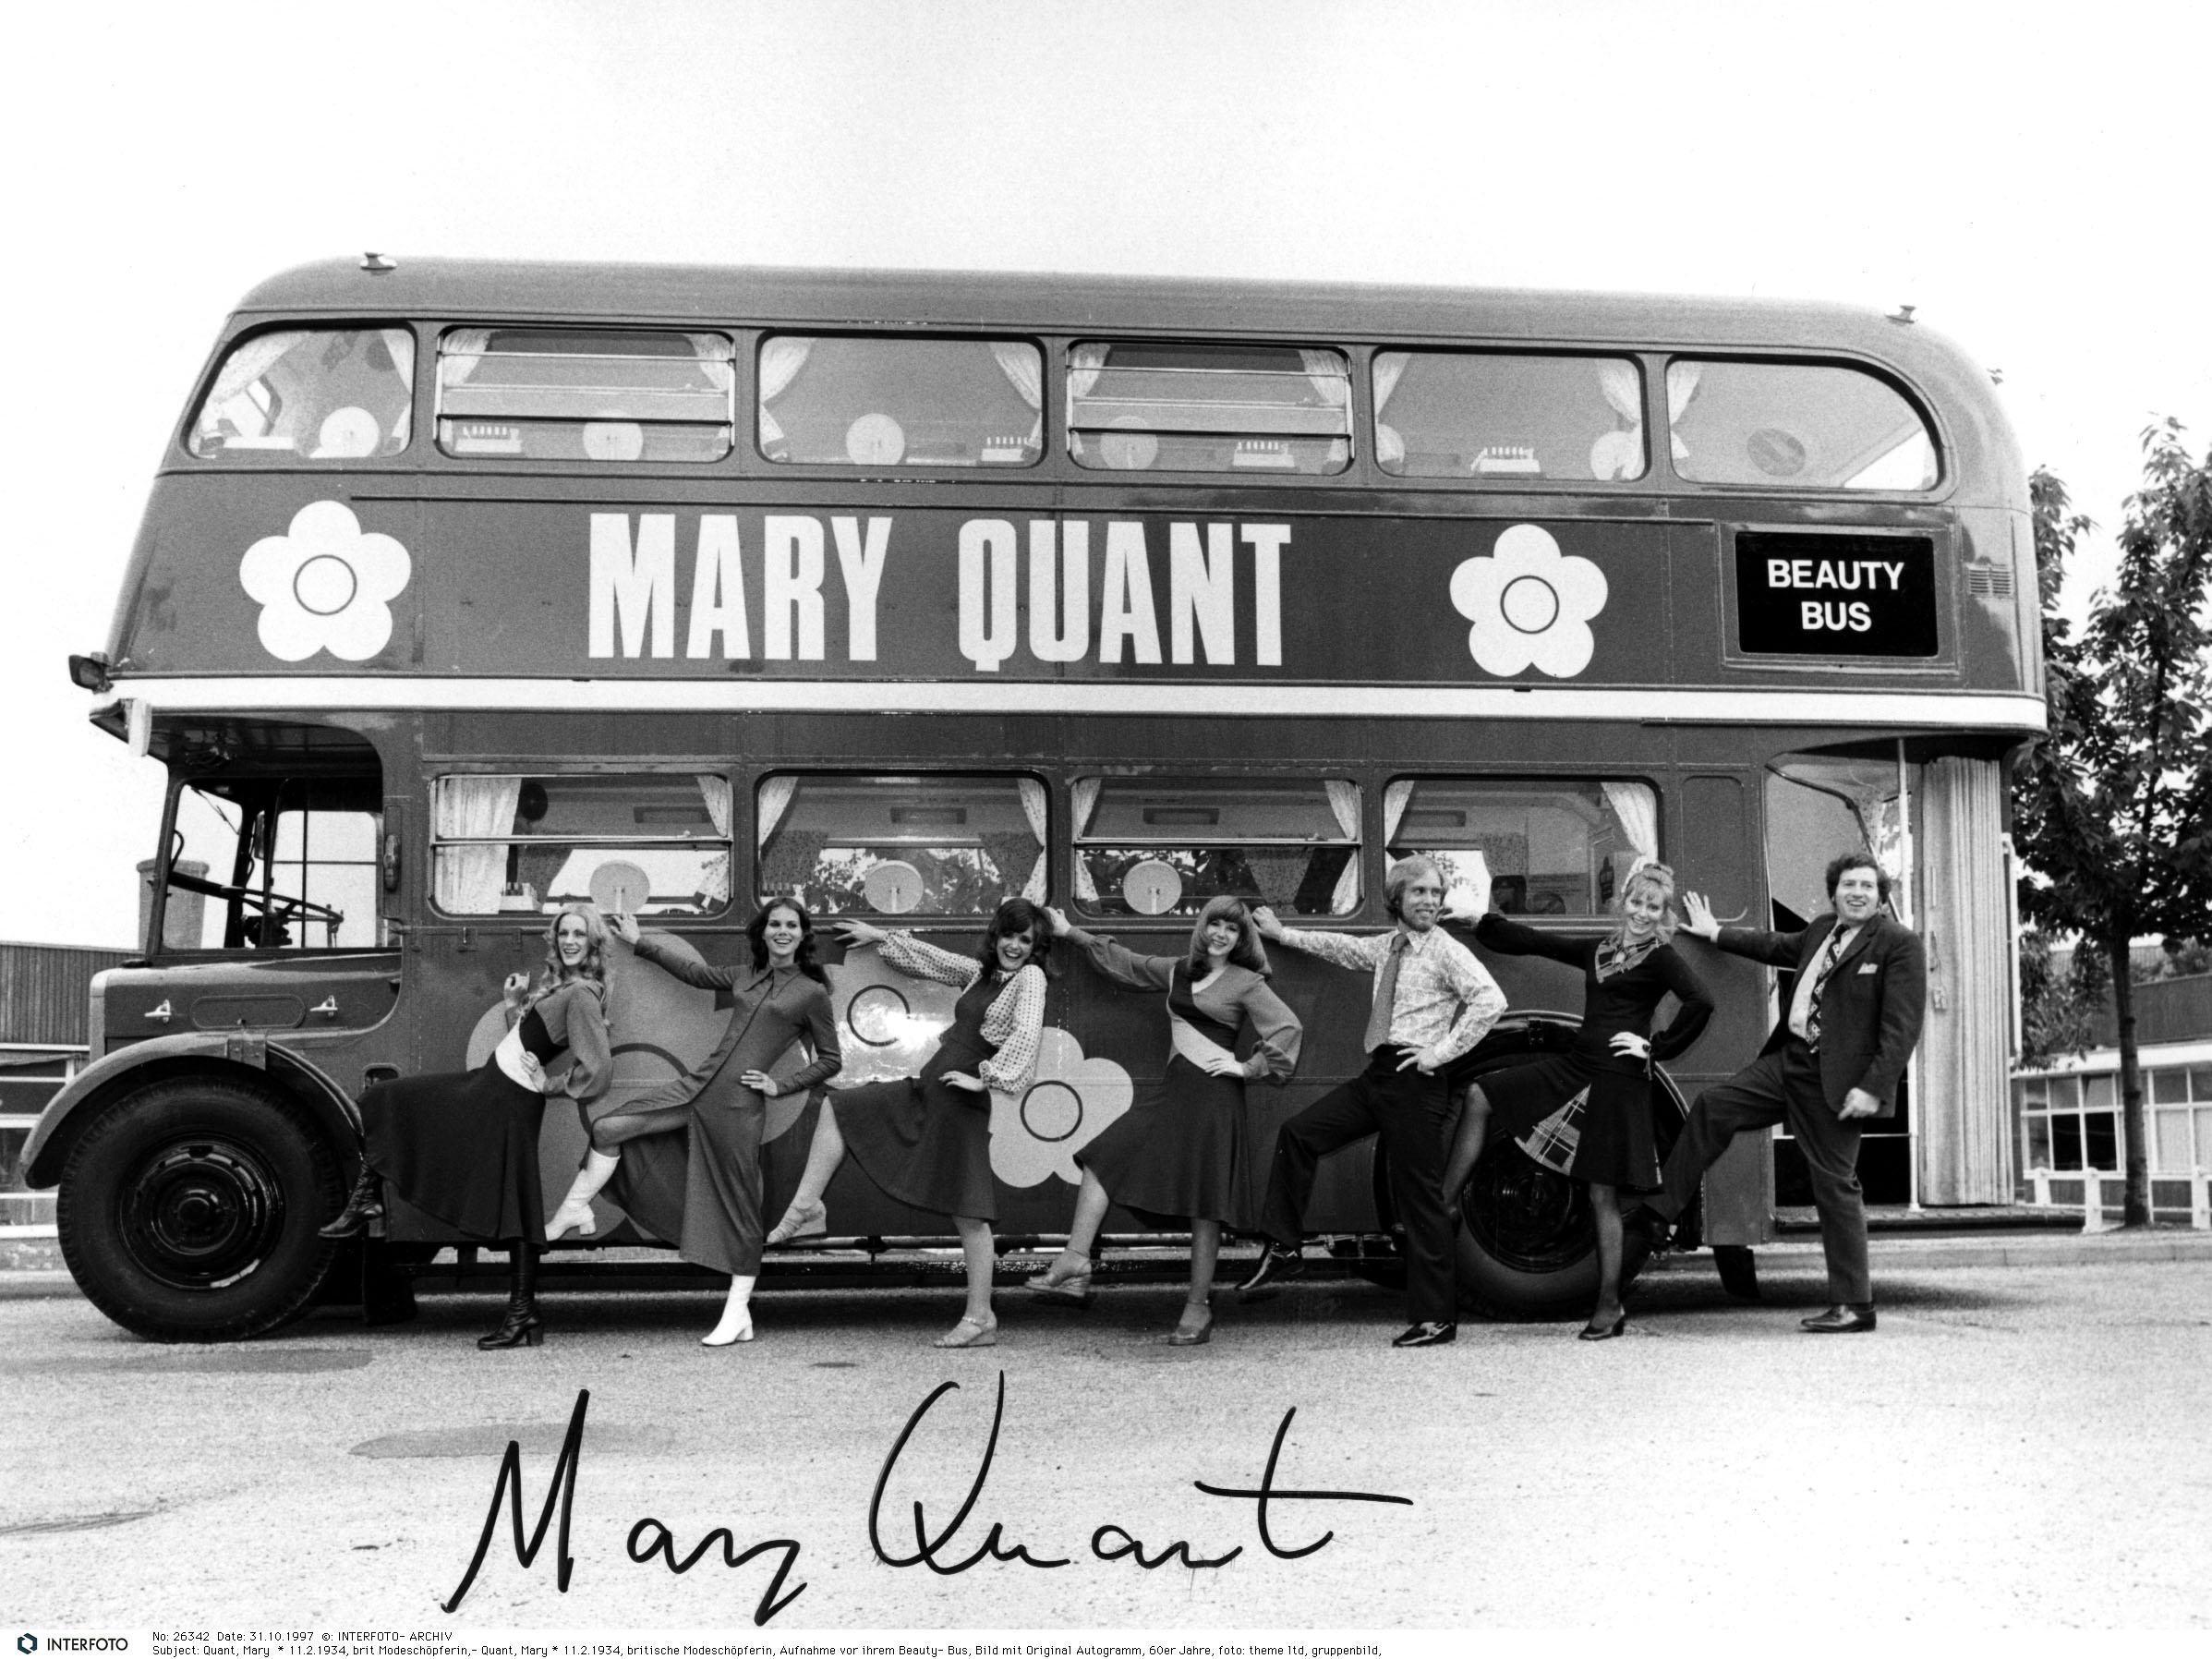 Women posing in front of the Mary Quant beauty bus